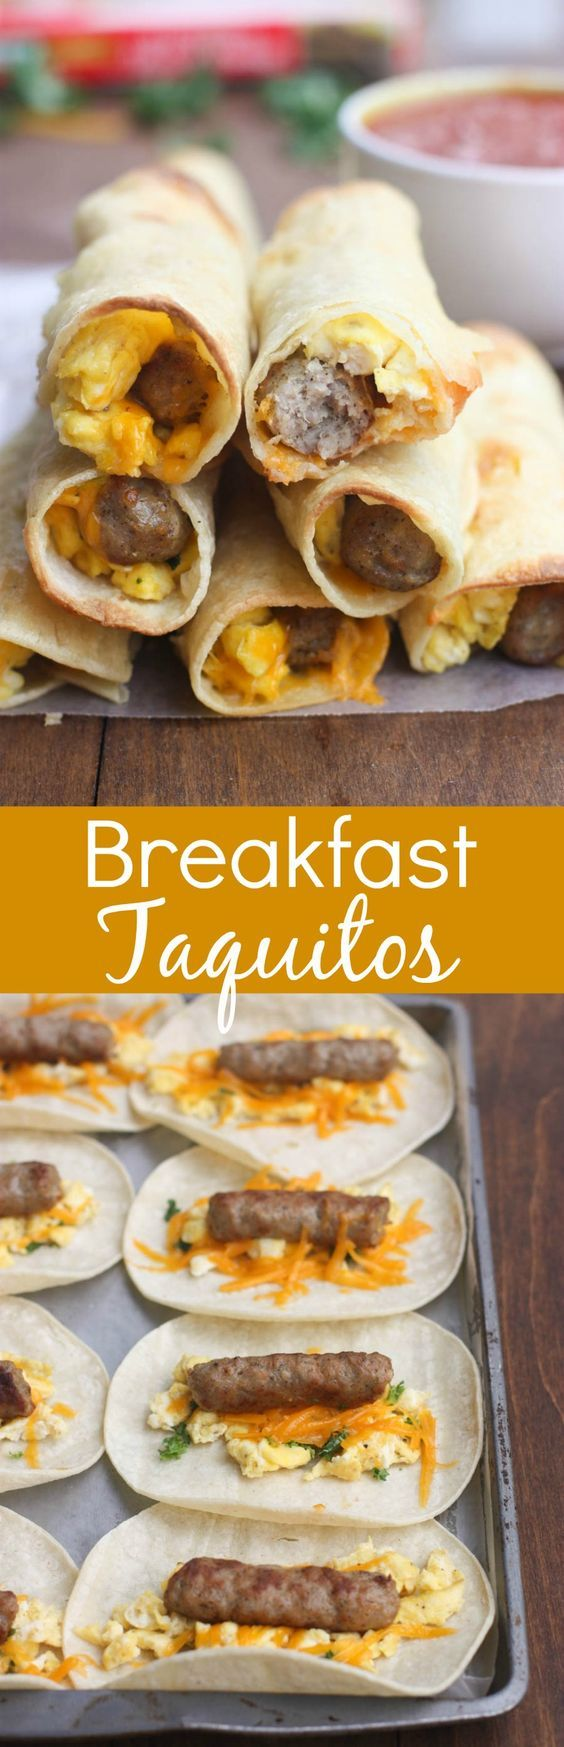 101 Camping Ideas For Kids Egg And Sausage Breakfast Taquitos